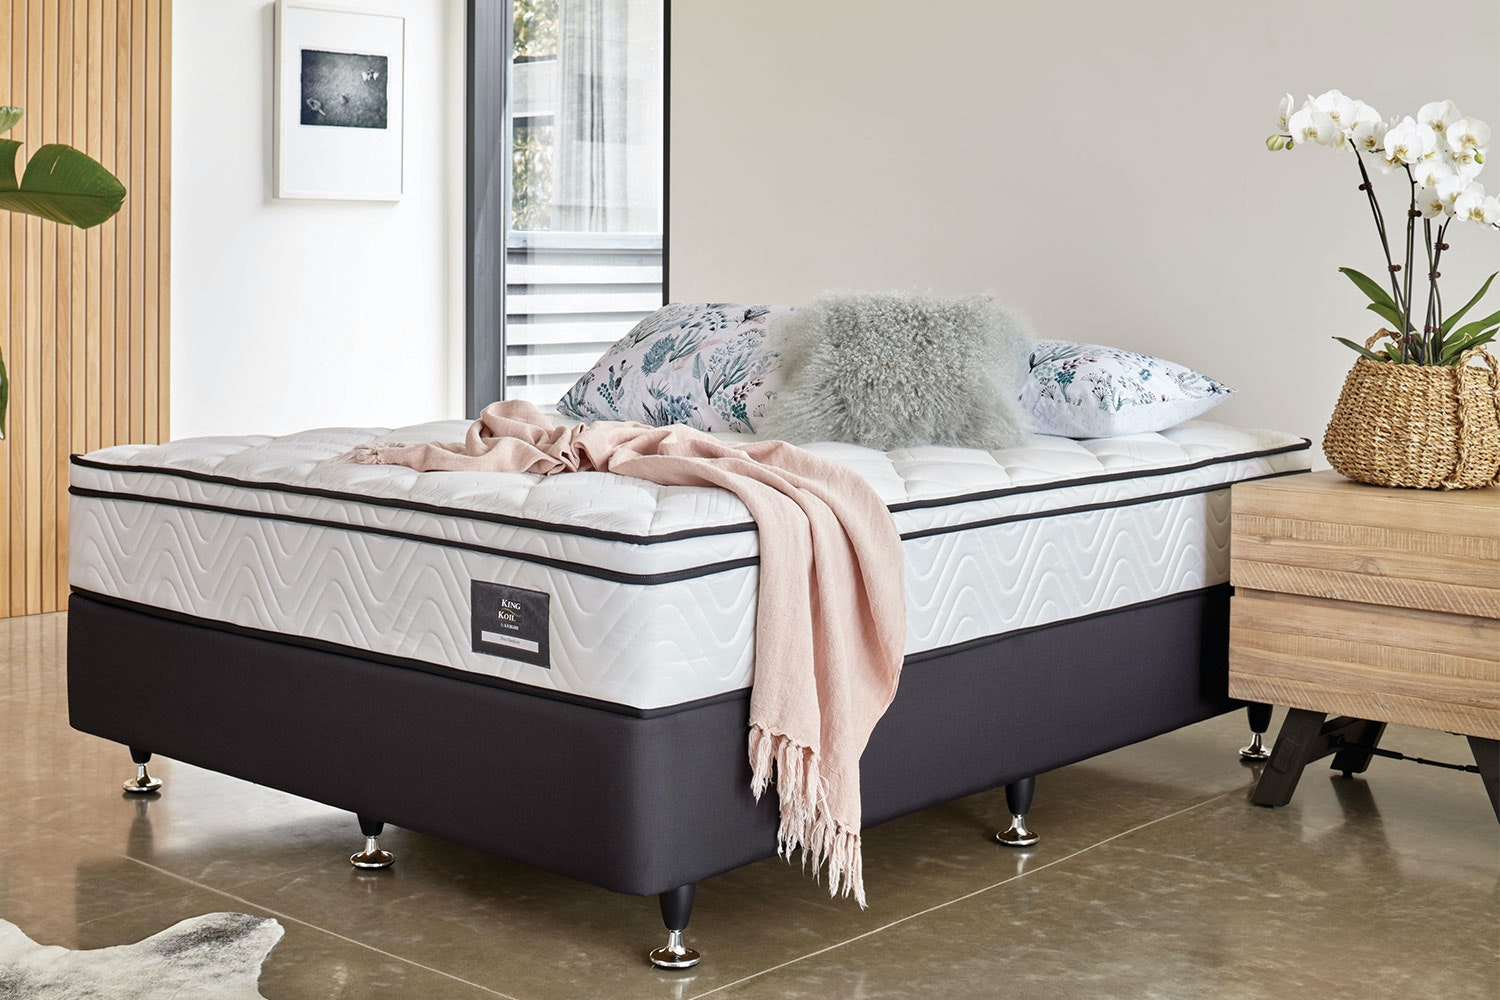 Viva Medium King Single Bed by King Koil